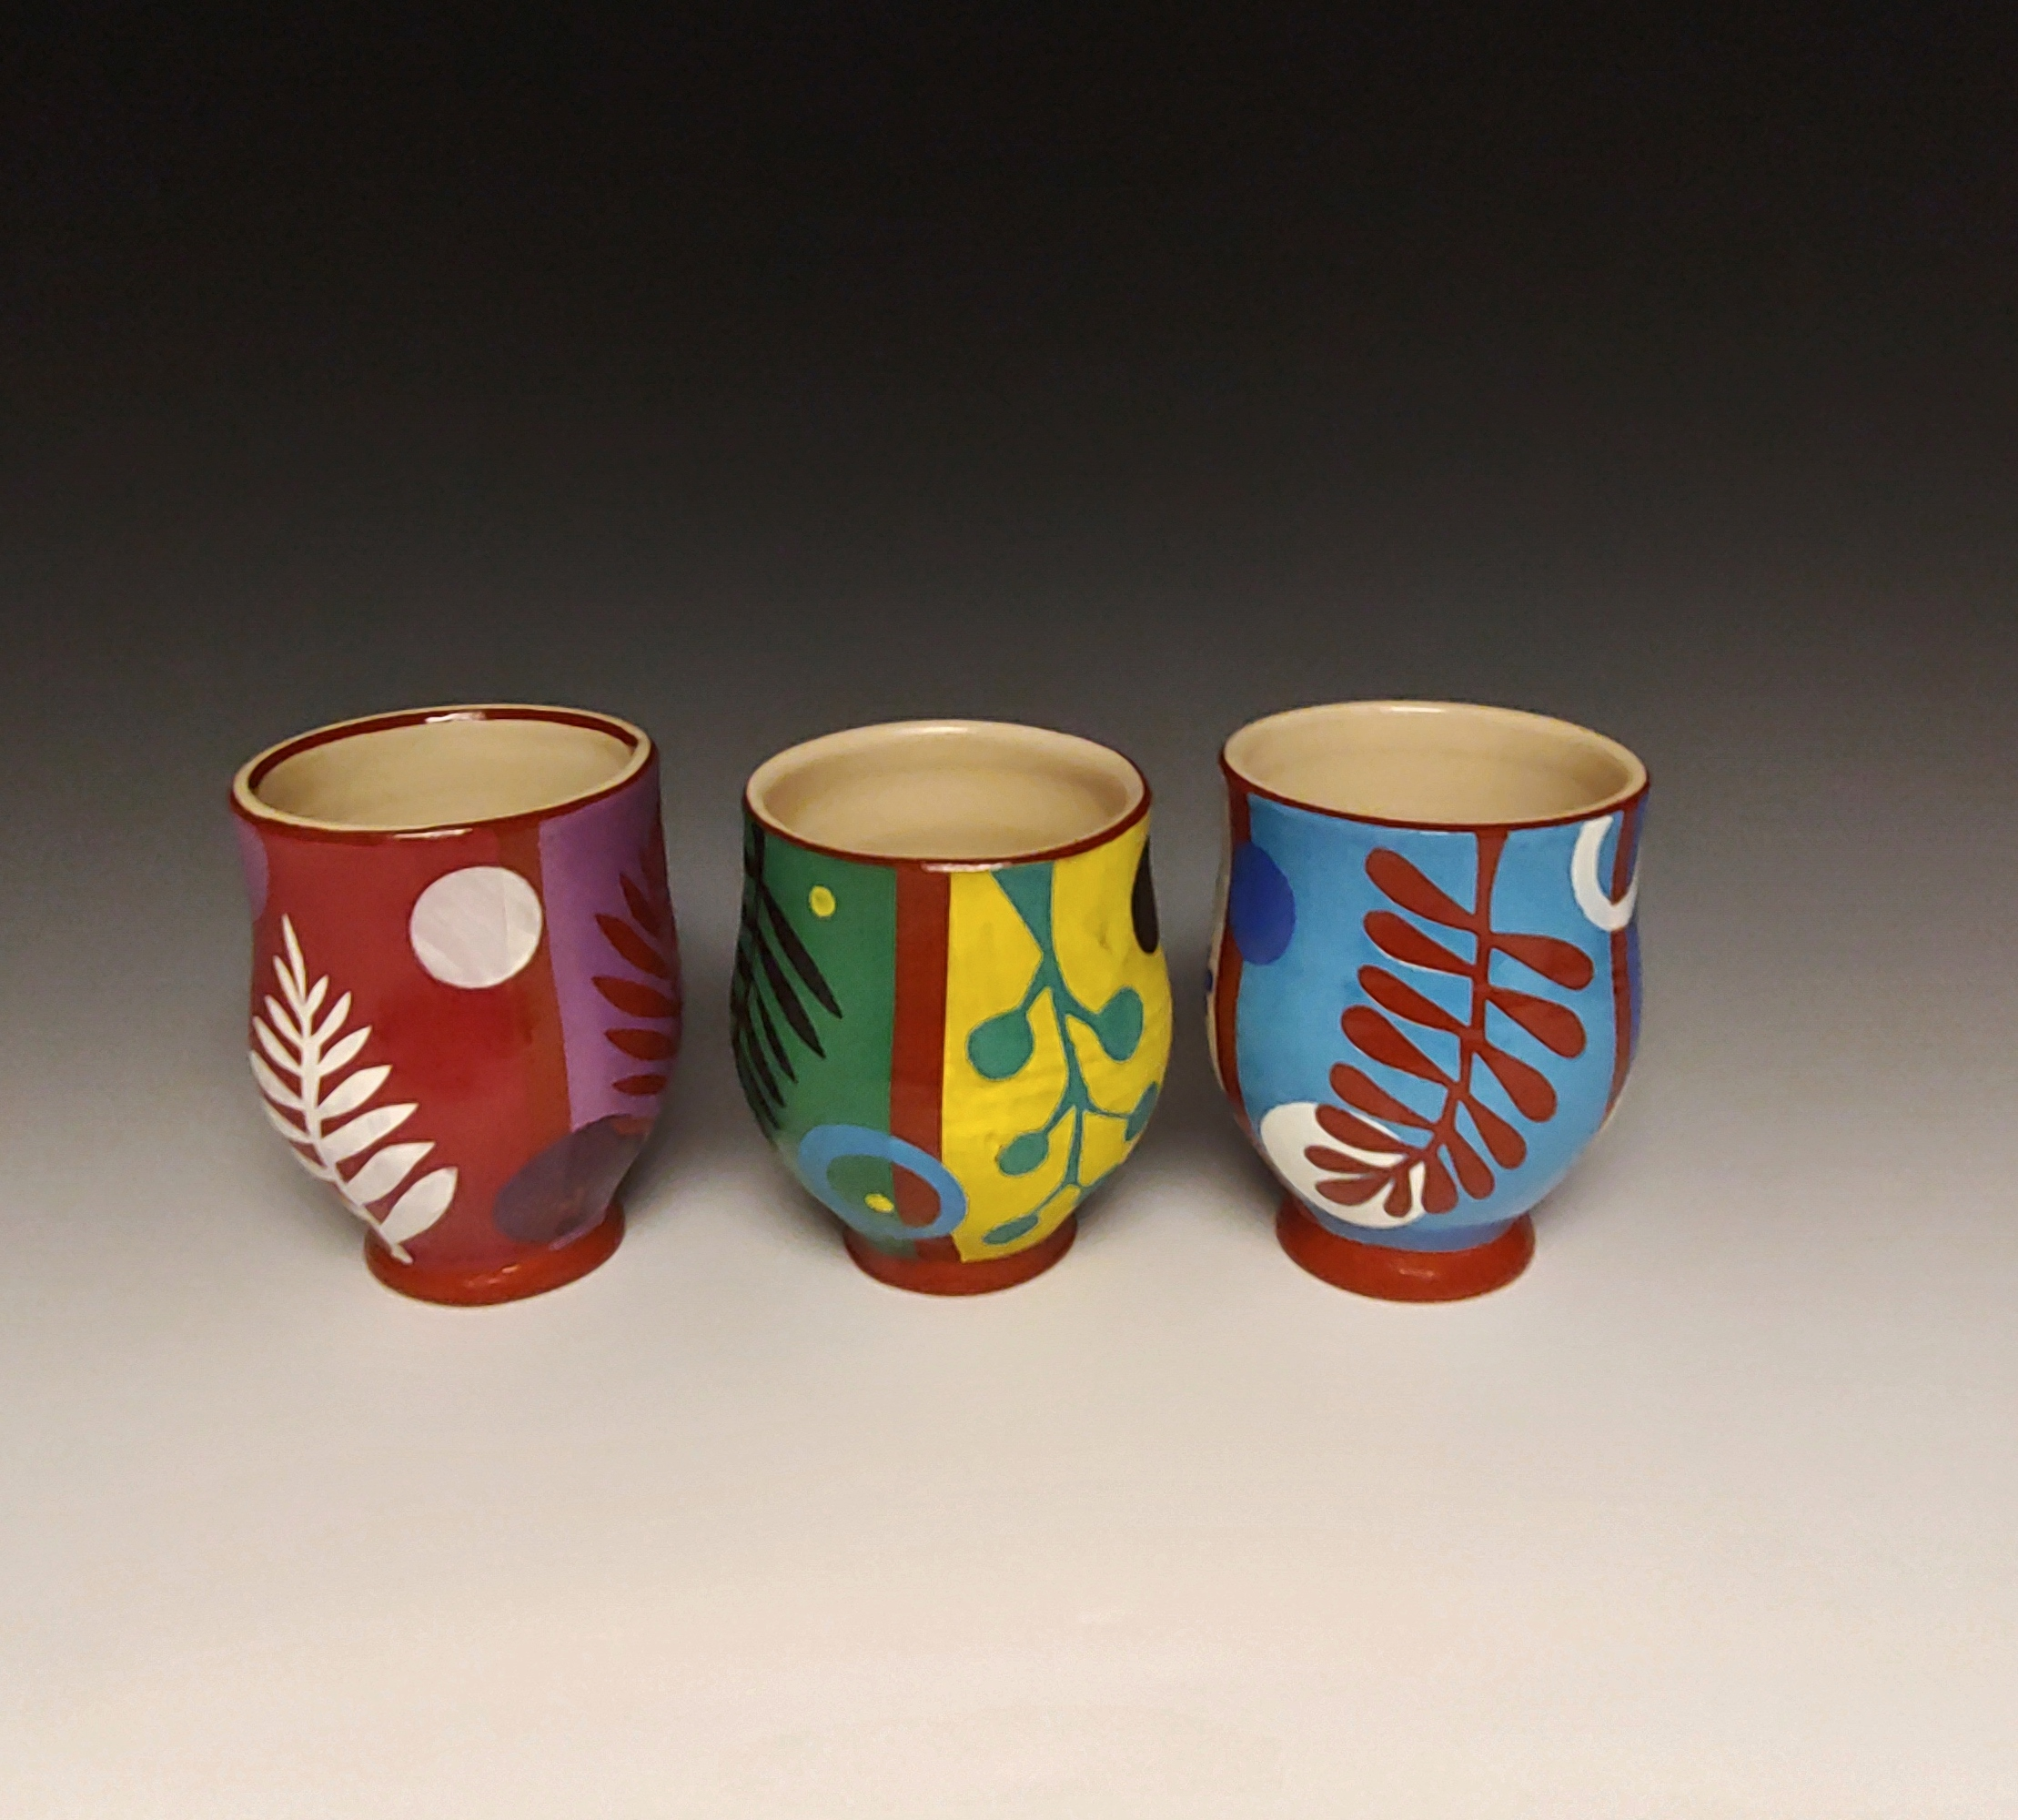 Three Cheerful Cups